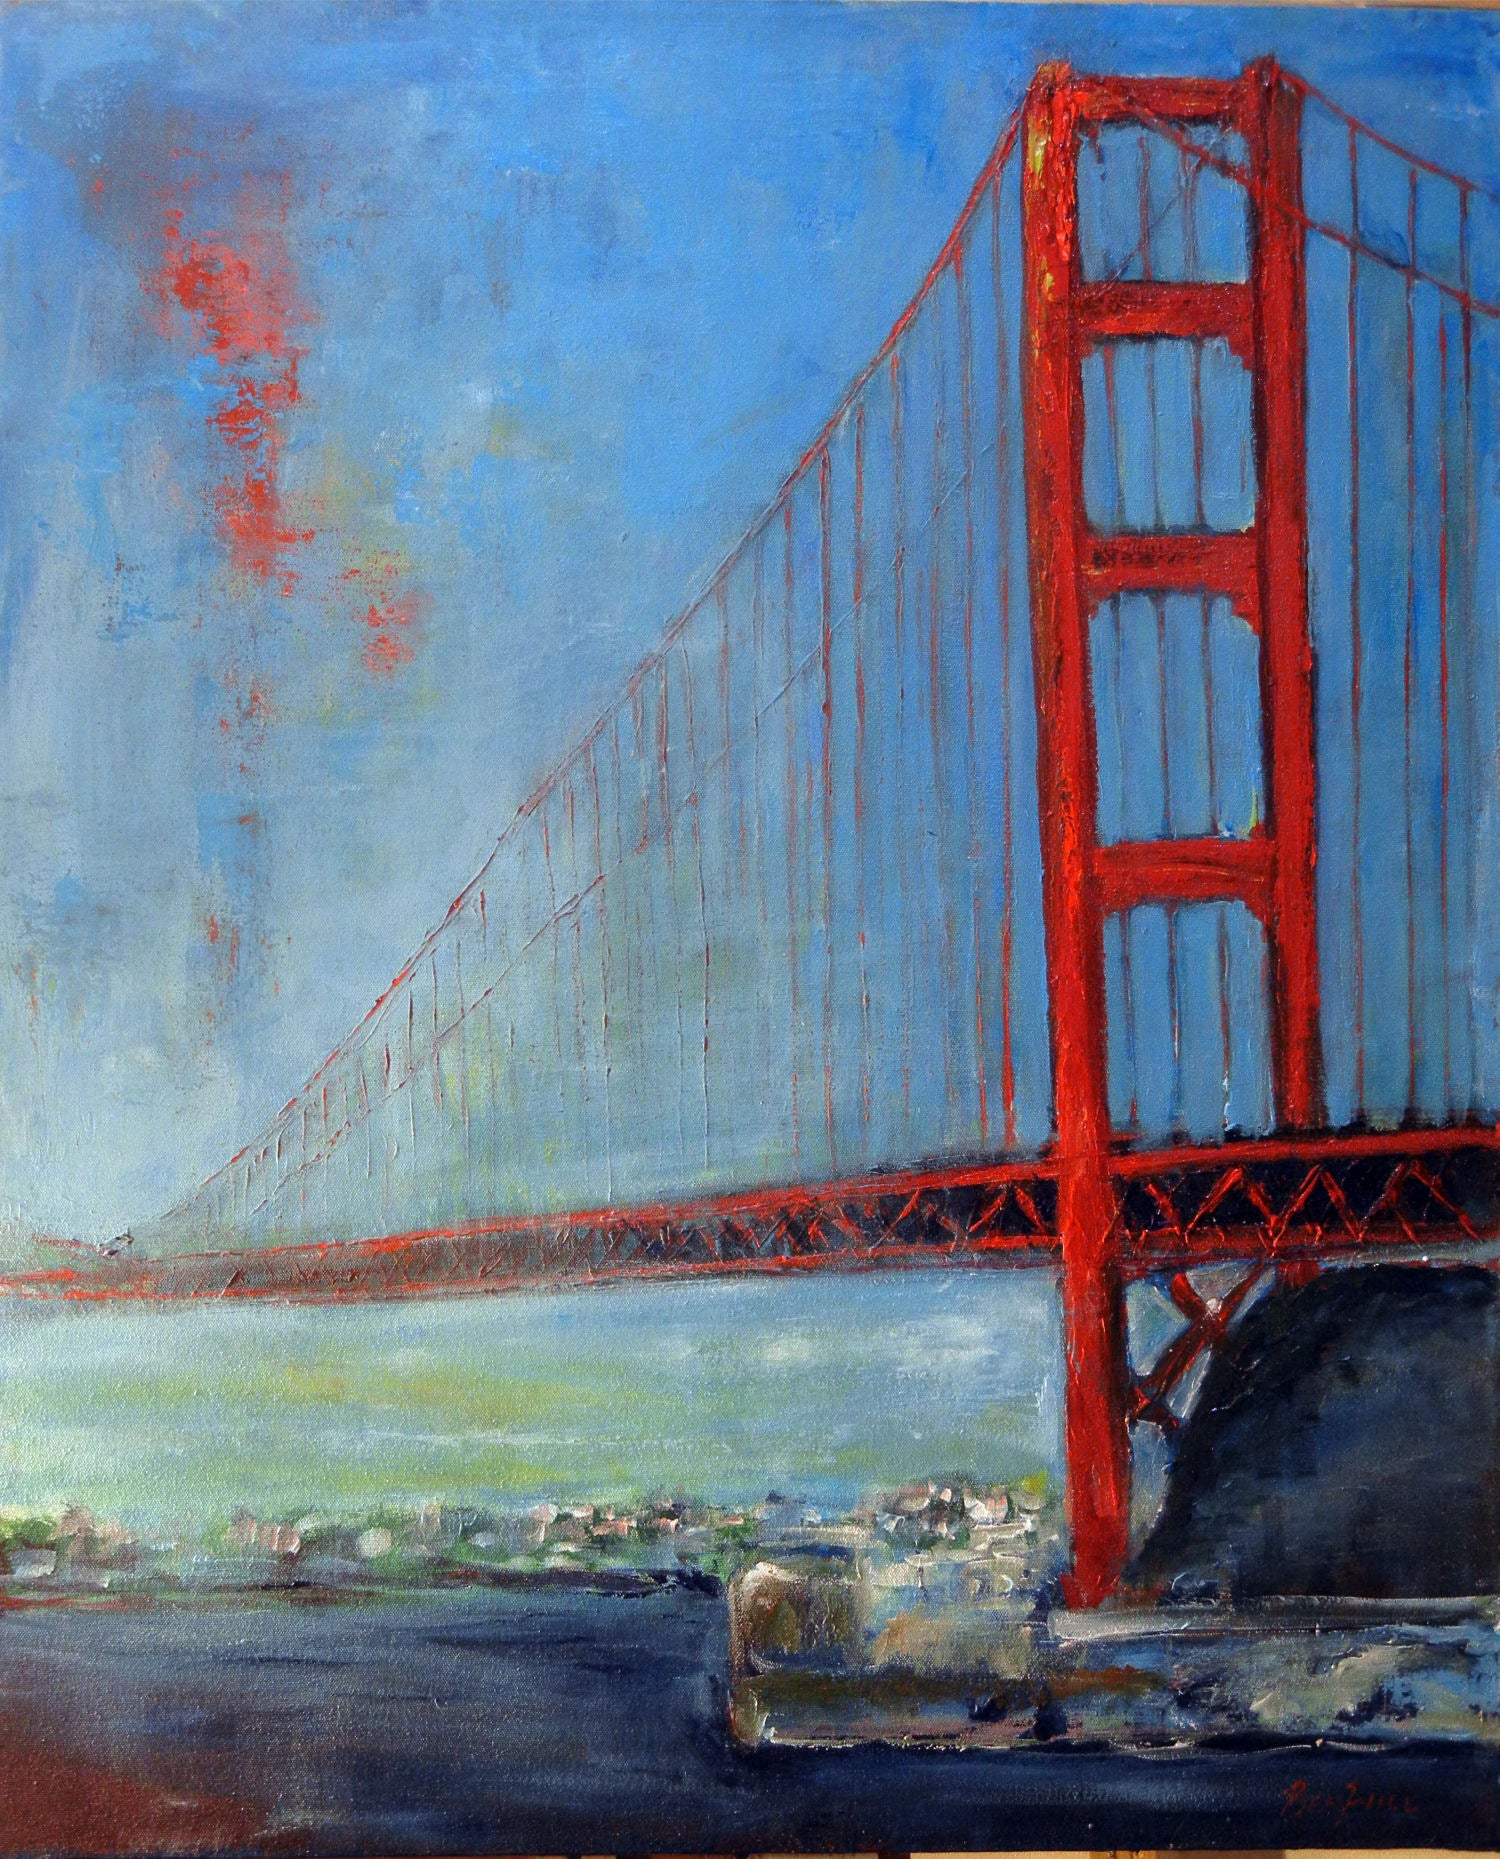 San Francisco Golden Gate Bridge Painting by Artist BenWill